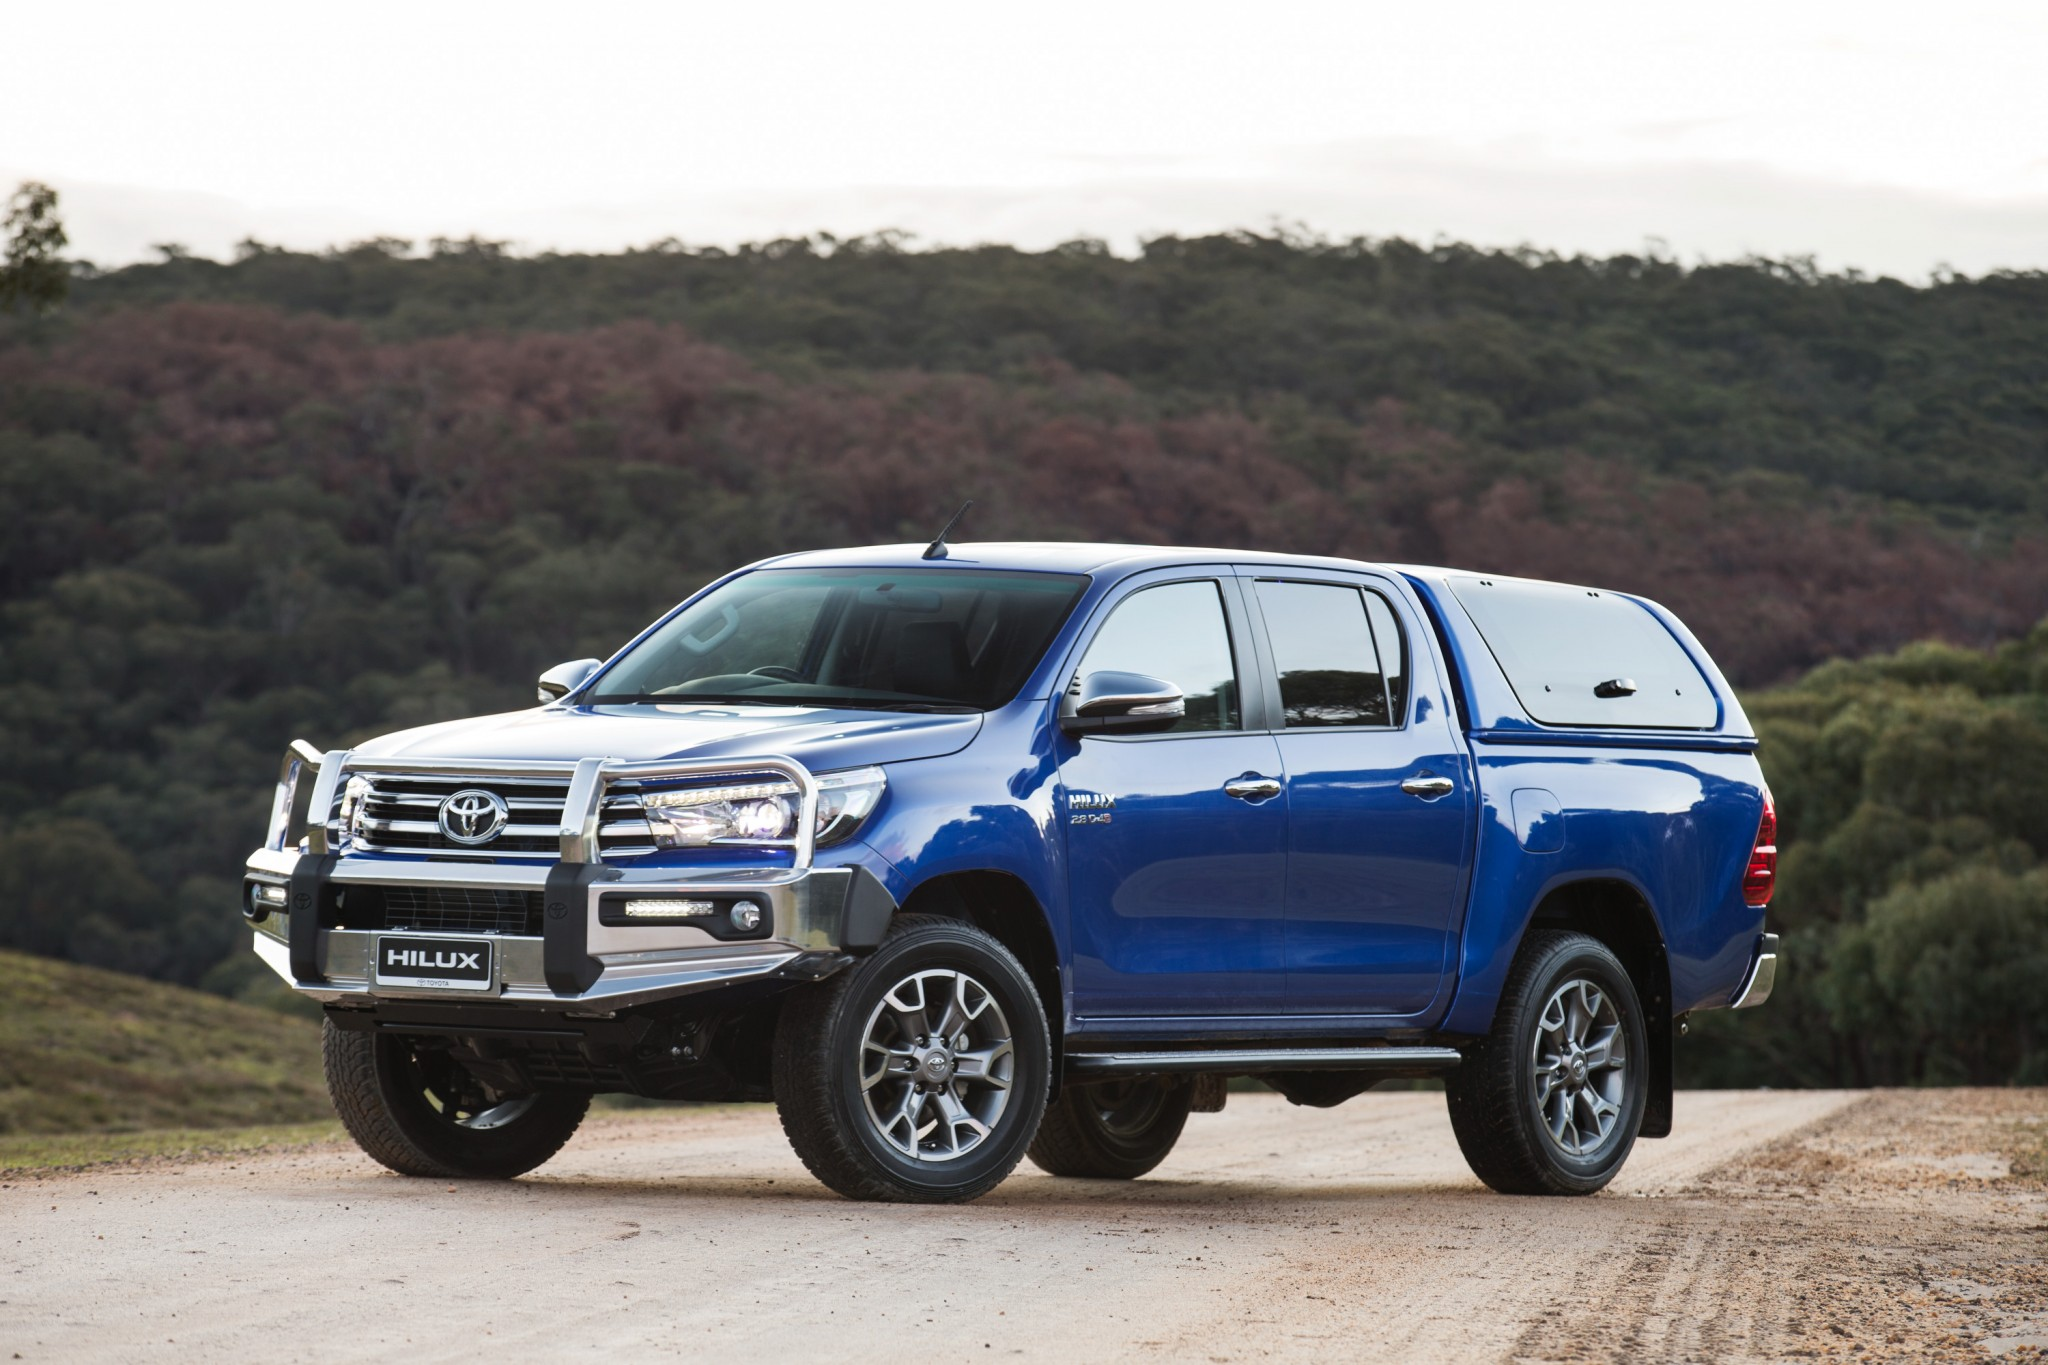 2016 Toyota Hilux Official Accessories Range Announced